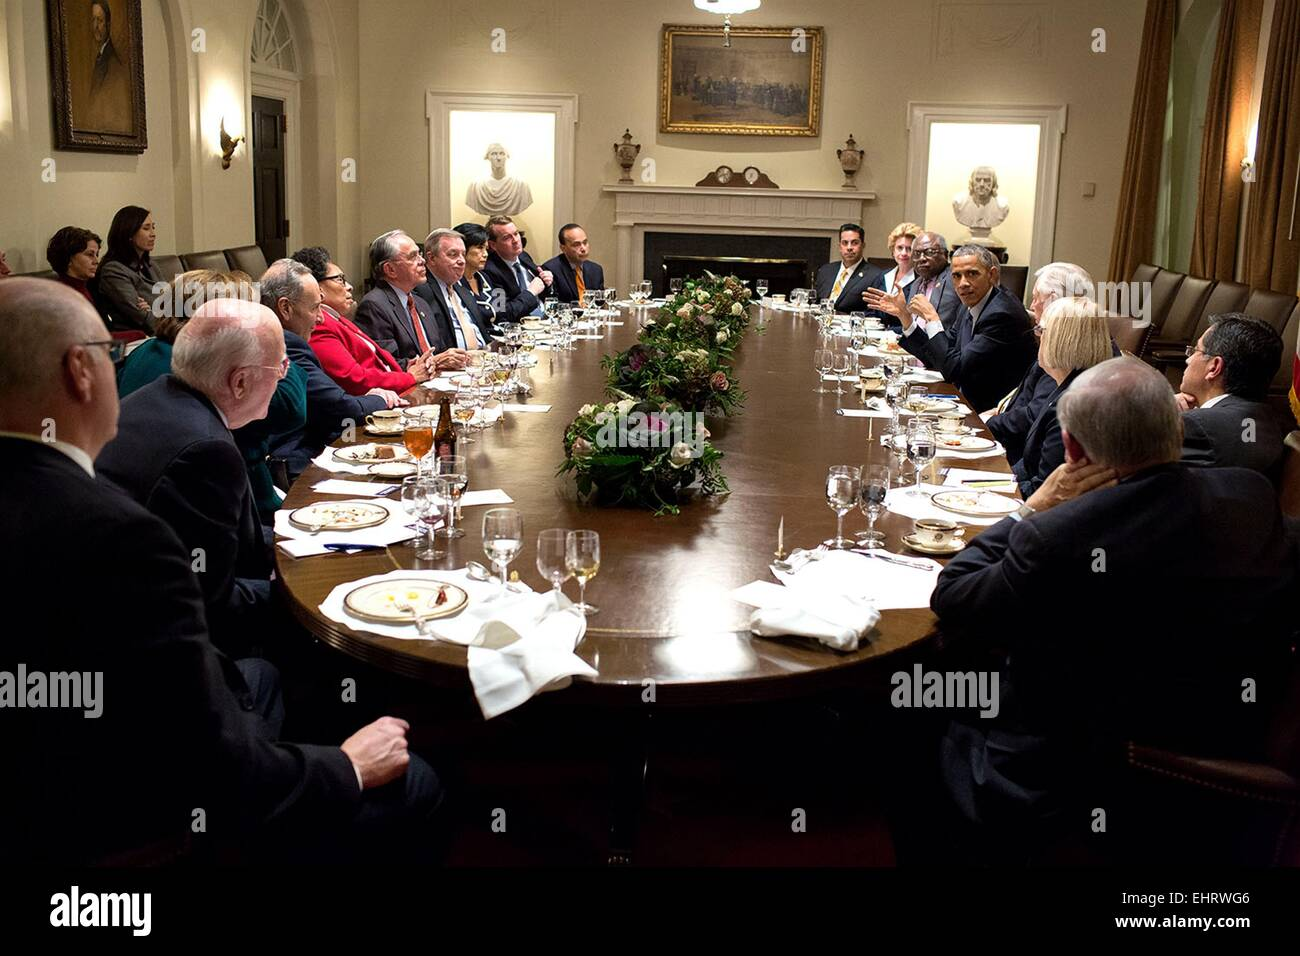 US President Barack Obama meets with Members of Congress during dinner in the Cabinet Room of the White House November - Stock Image